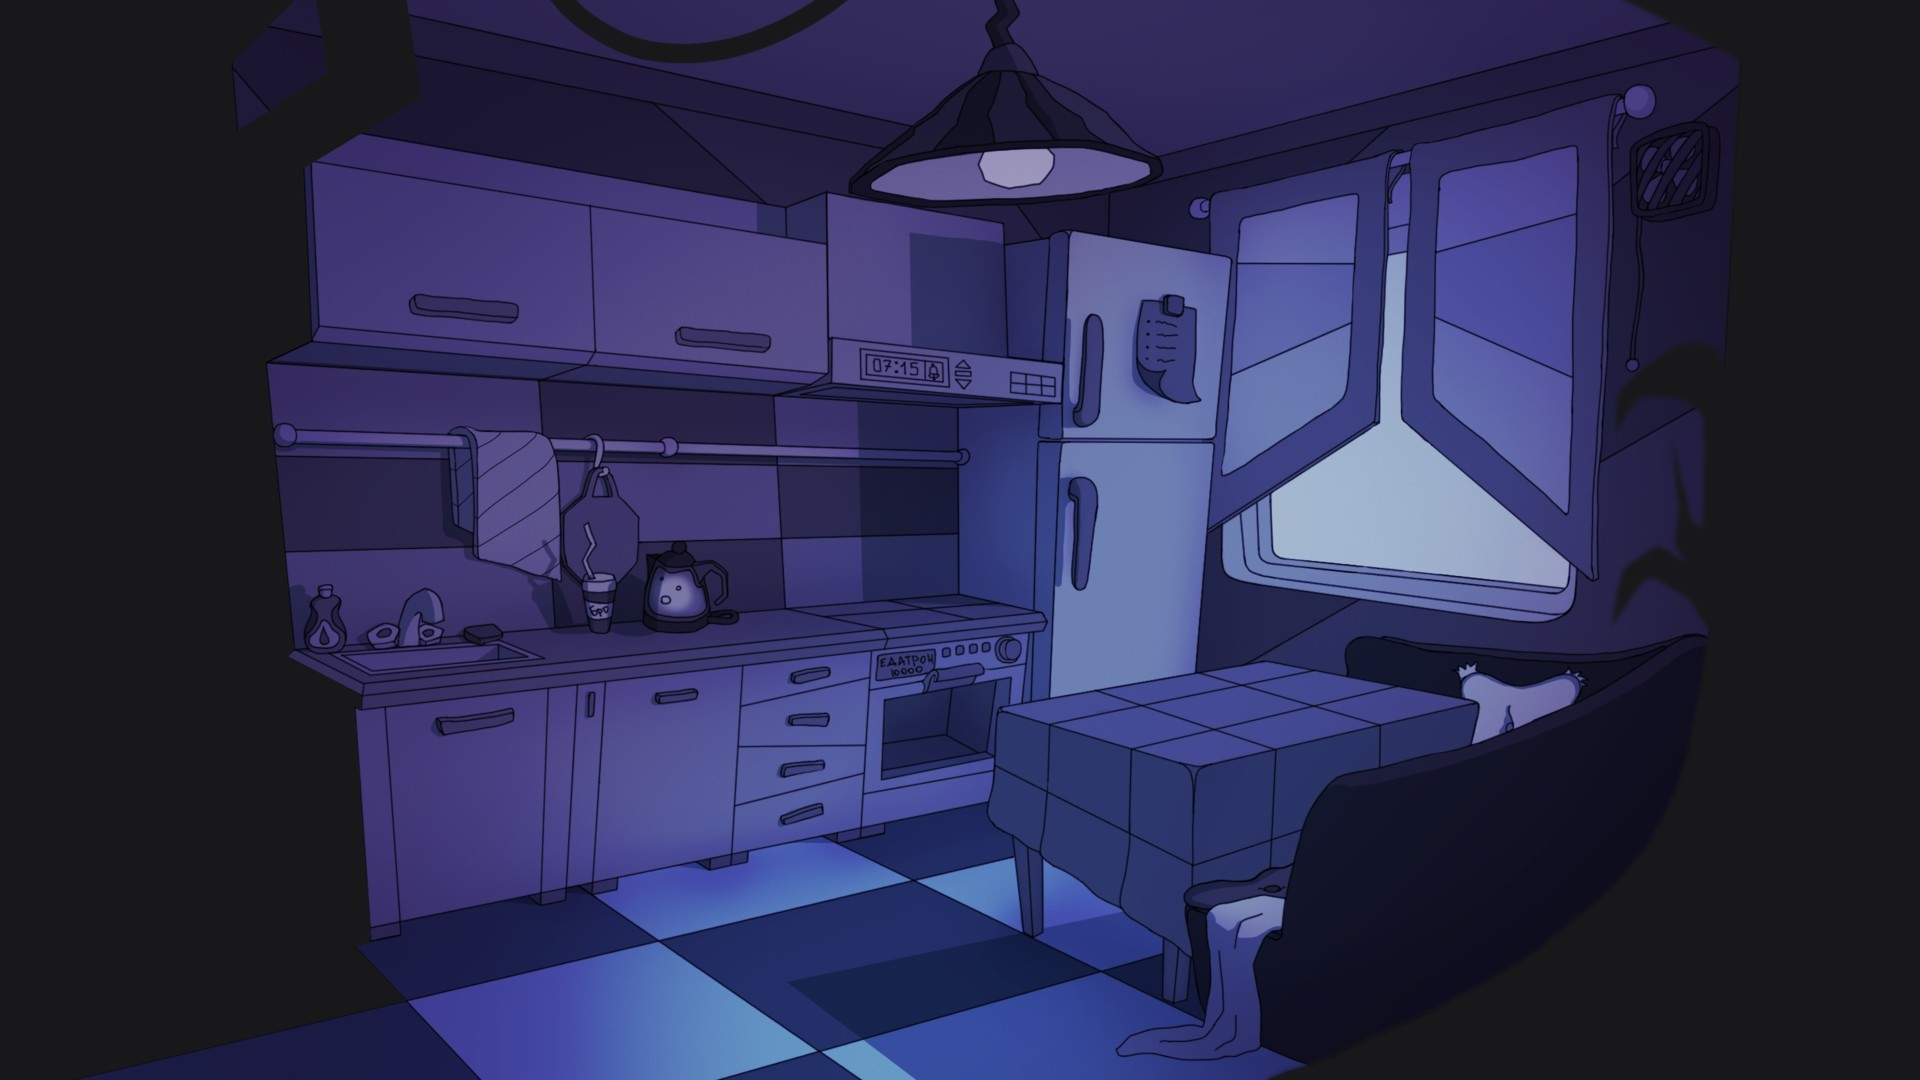 Anime Kitchen Desktop Wallpaper